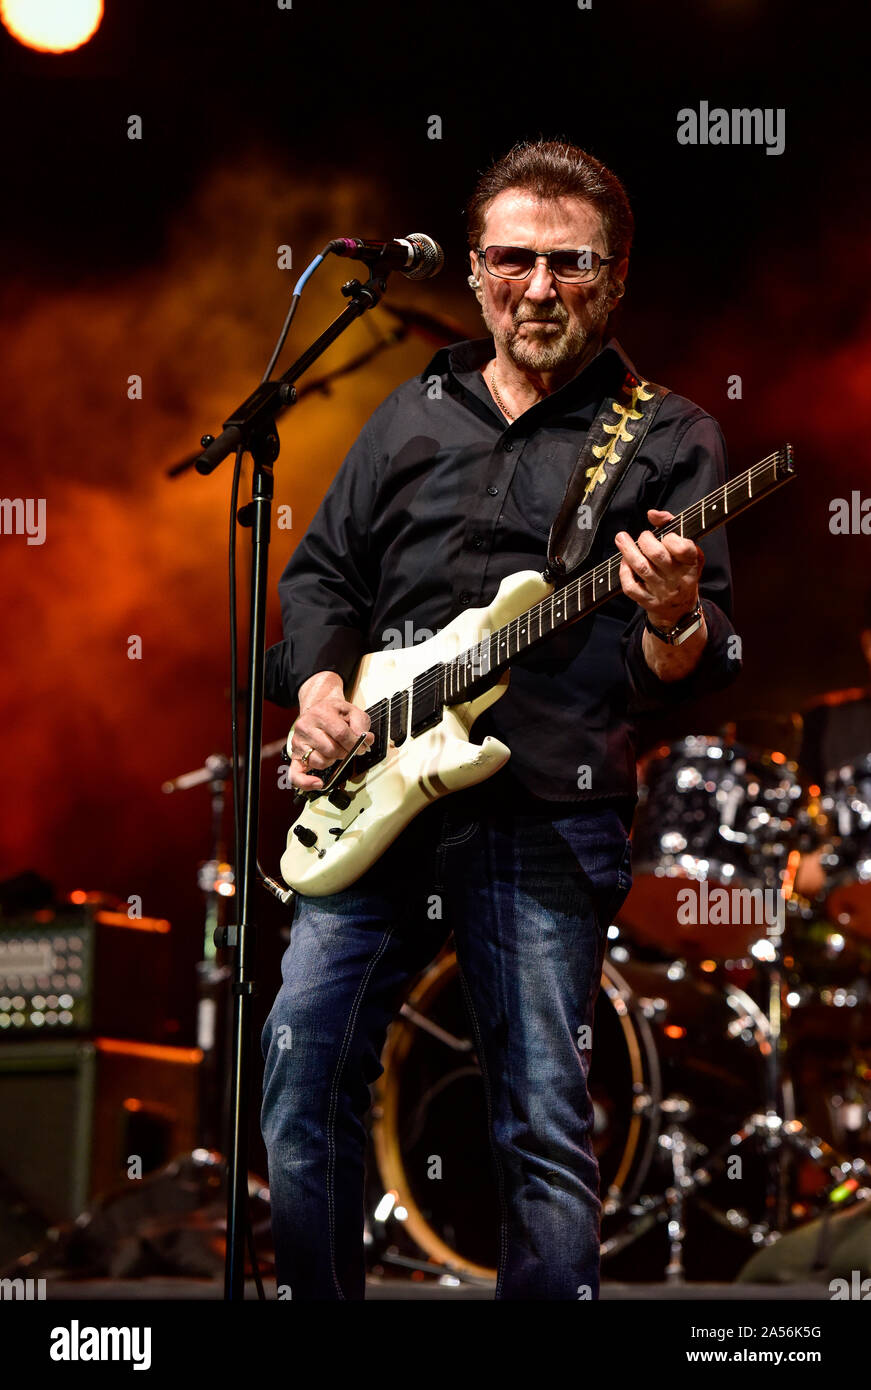 July 4, 2019, Moapa Nevada, Buck Dharma of Blue Oyster Cult on stage at the Moapa Event Center In Moapa, Nevada. Stock Photo